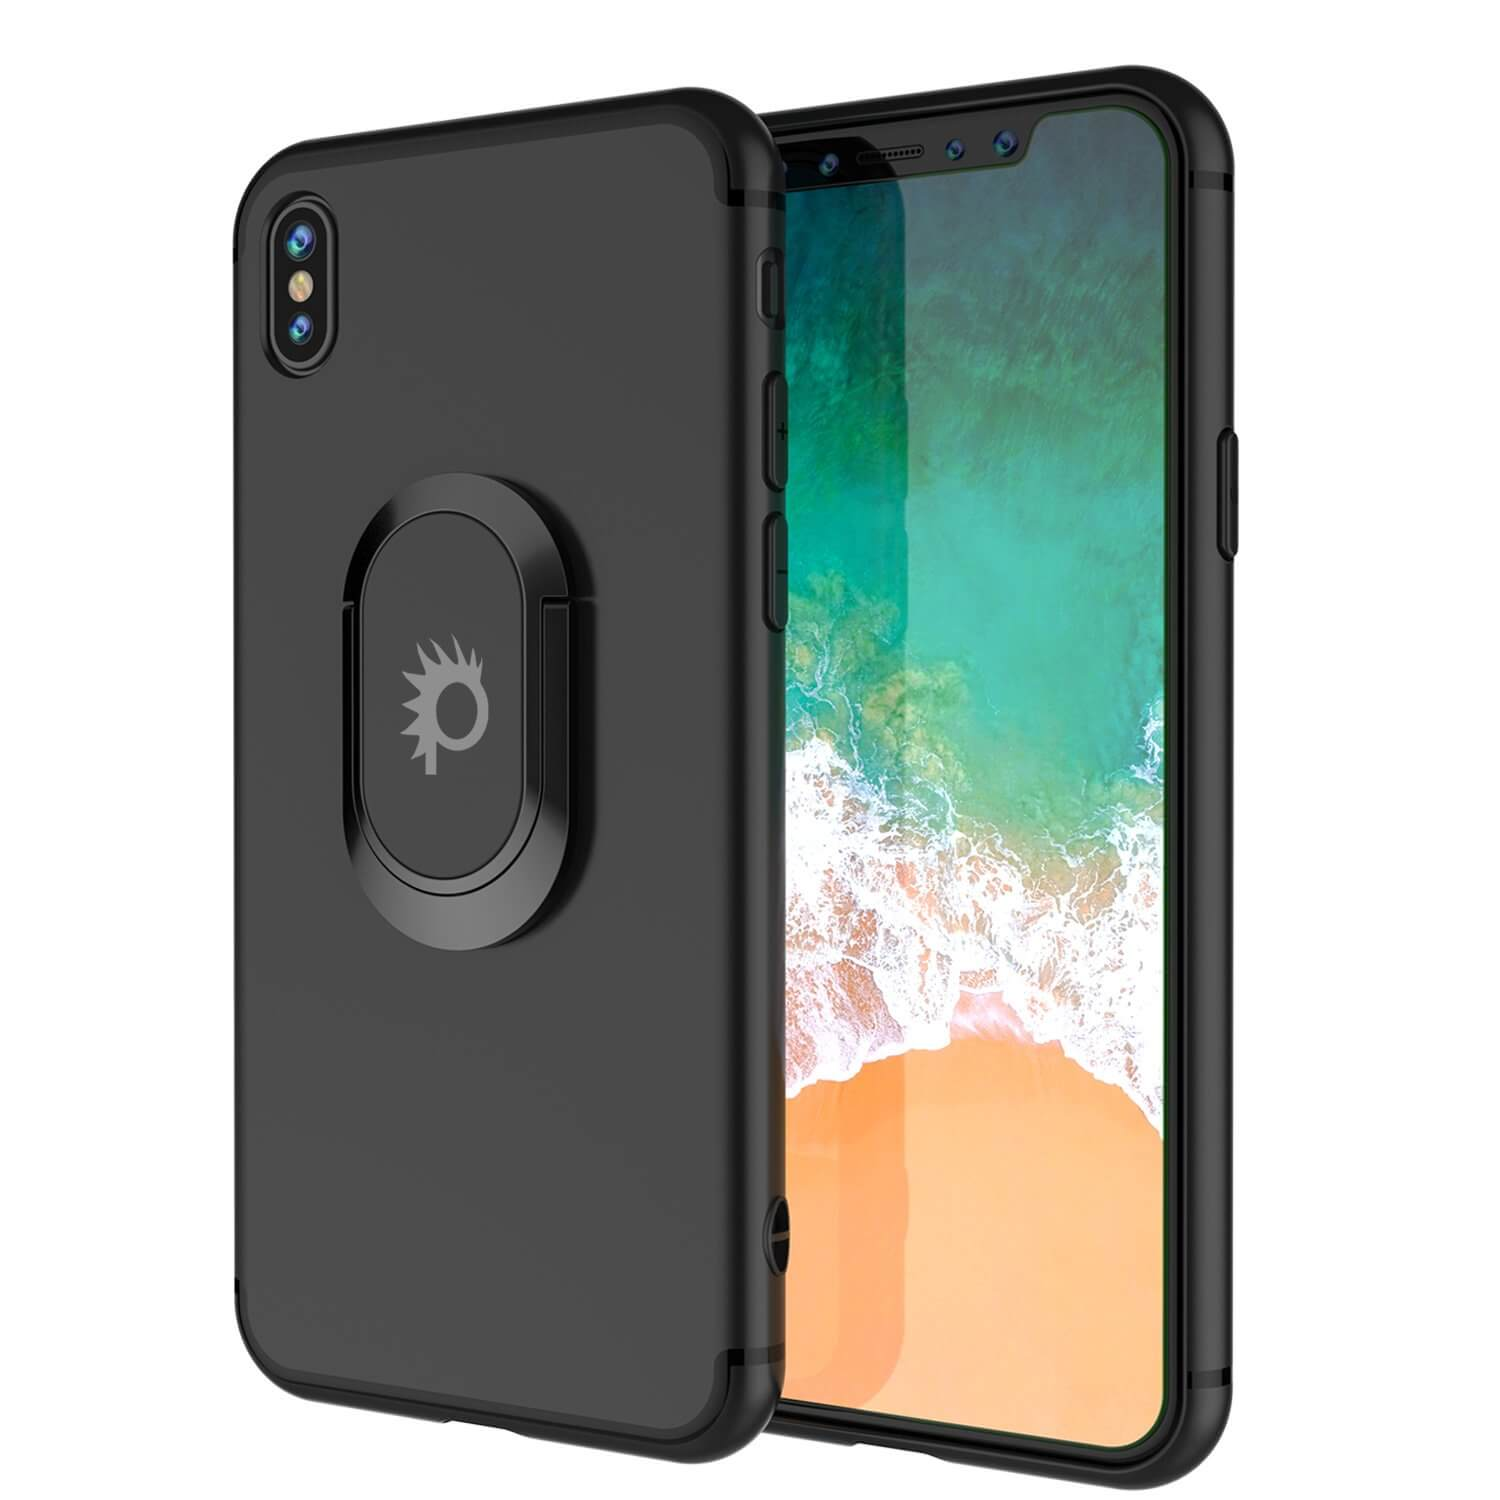 iPhone XS Max Case, Punkcase Magnetix Protective TPU Cover W/ Kickstand, Tempered Glass Screen Protector [Black]